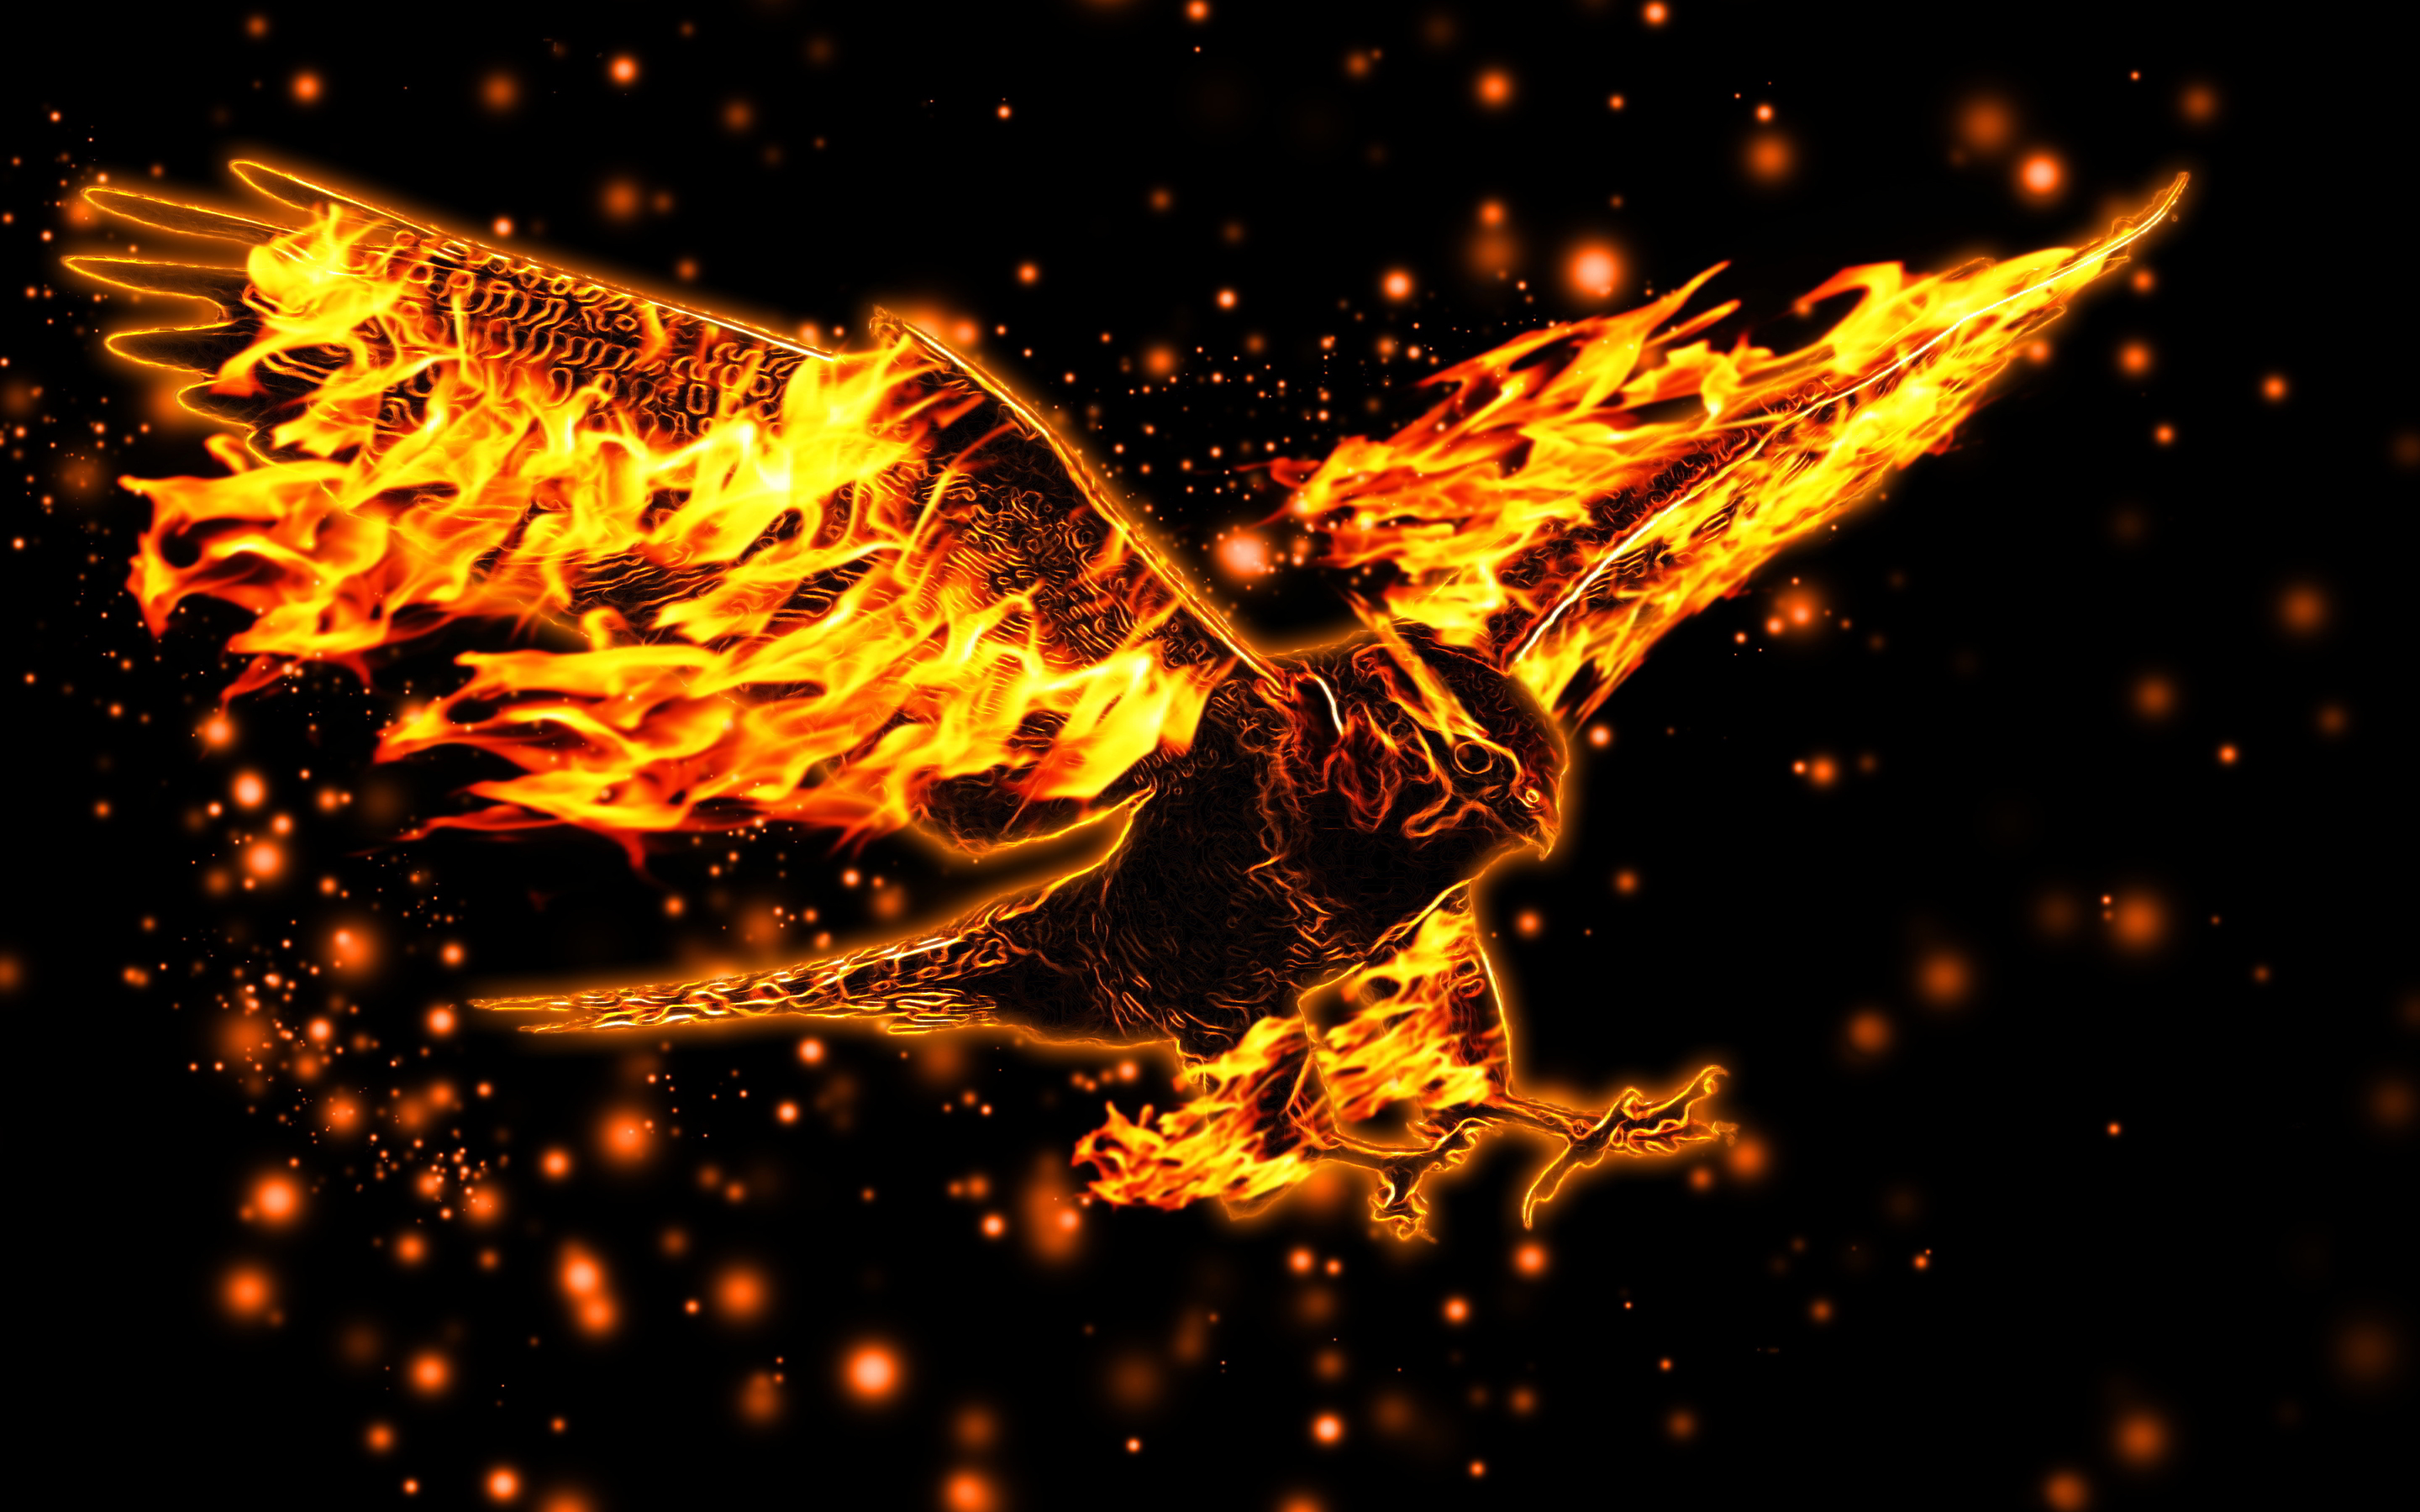 Burning eagle